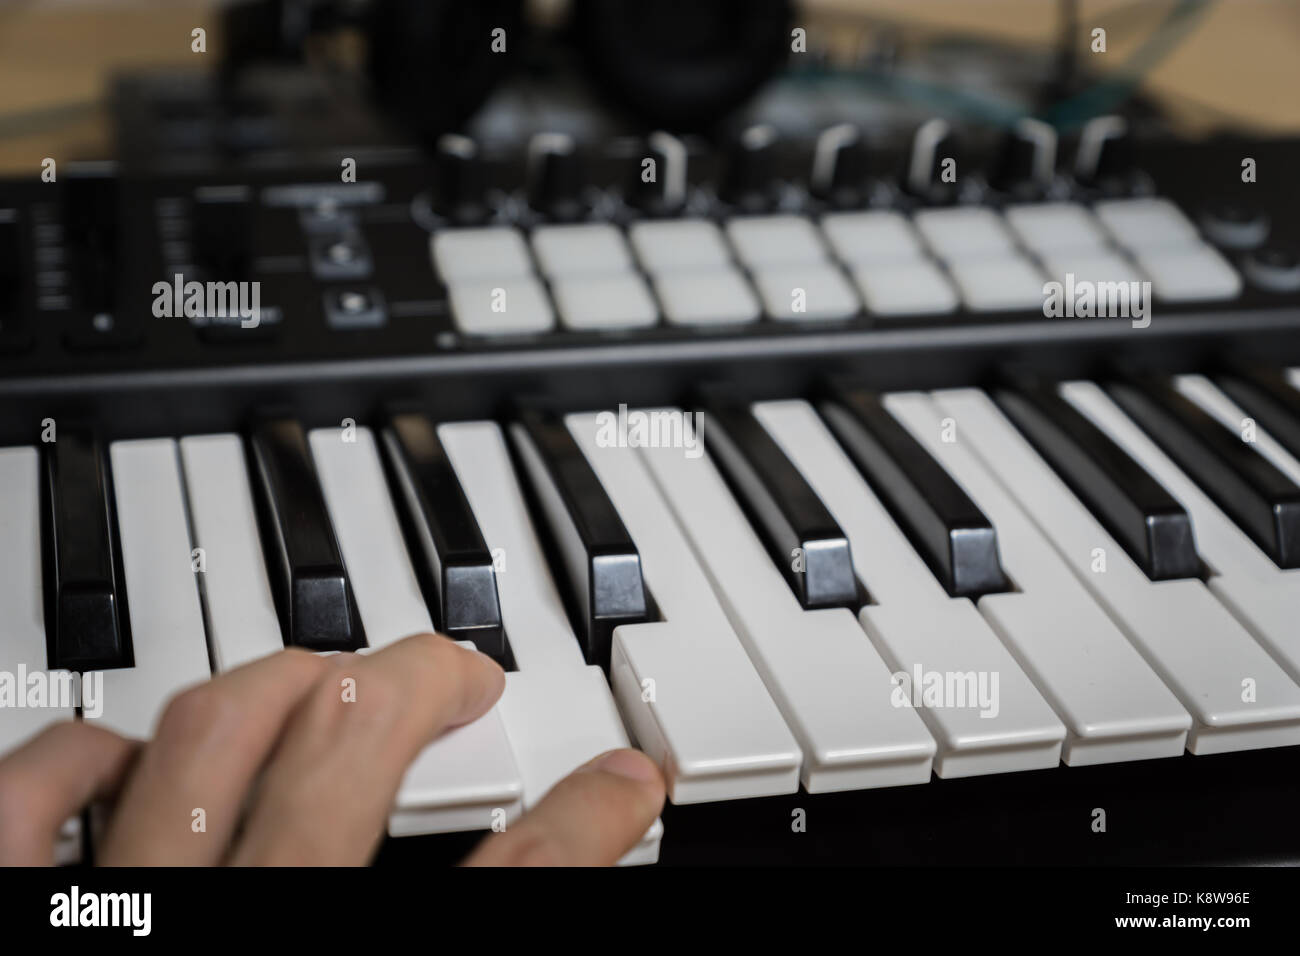 MIDI keyboard synthesizer piano keys closeup for electronic music production / recording - Stock Image